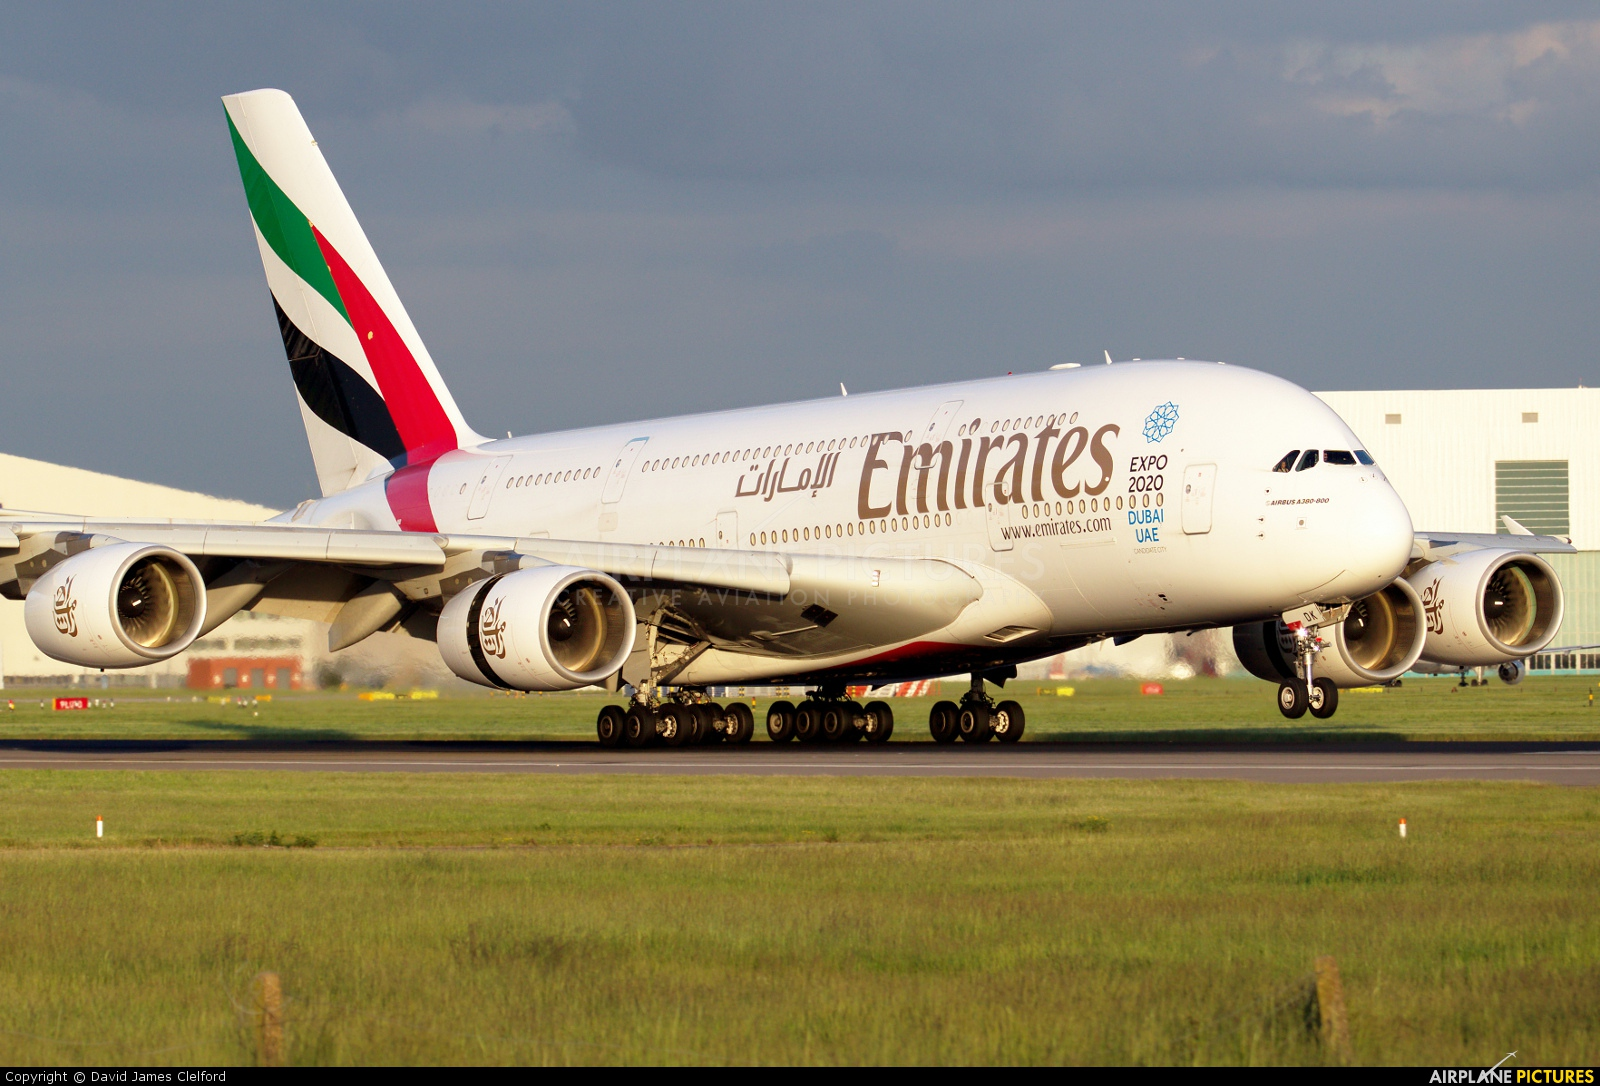 Emirates Airlines A6-EDK aircraft at London - Heathrow